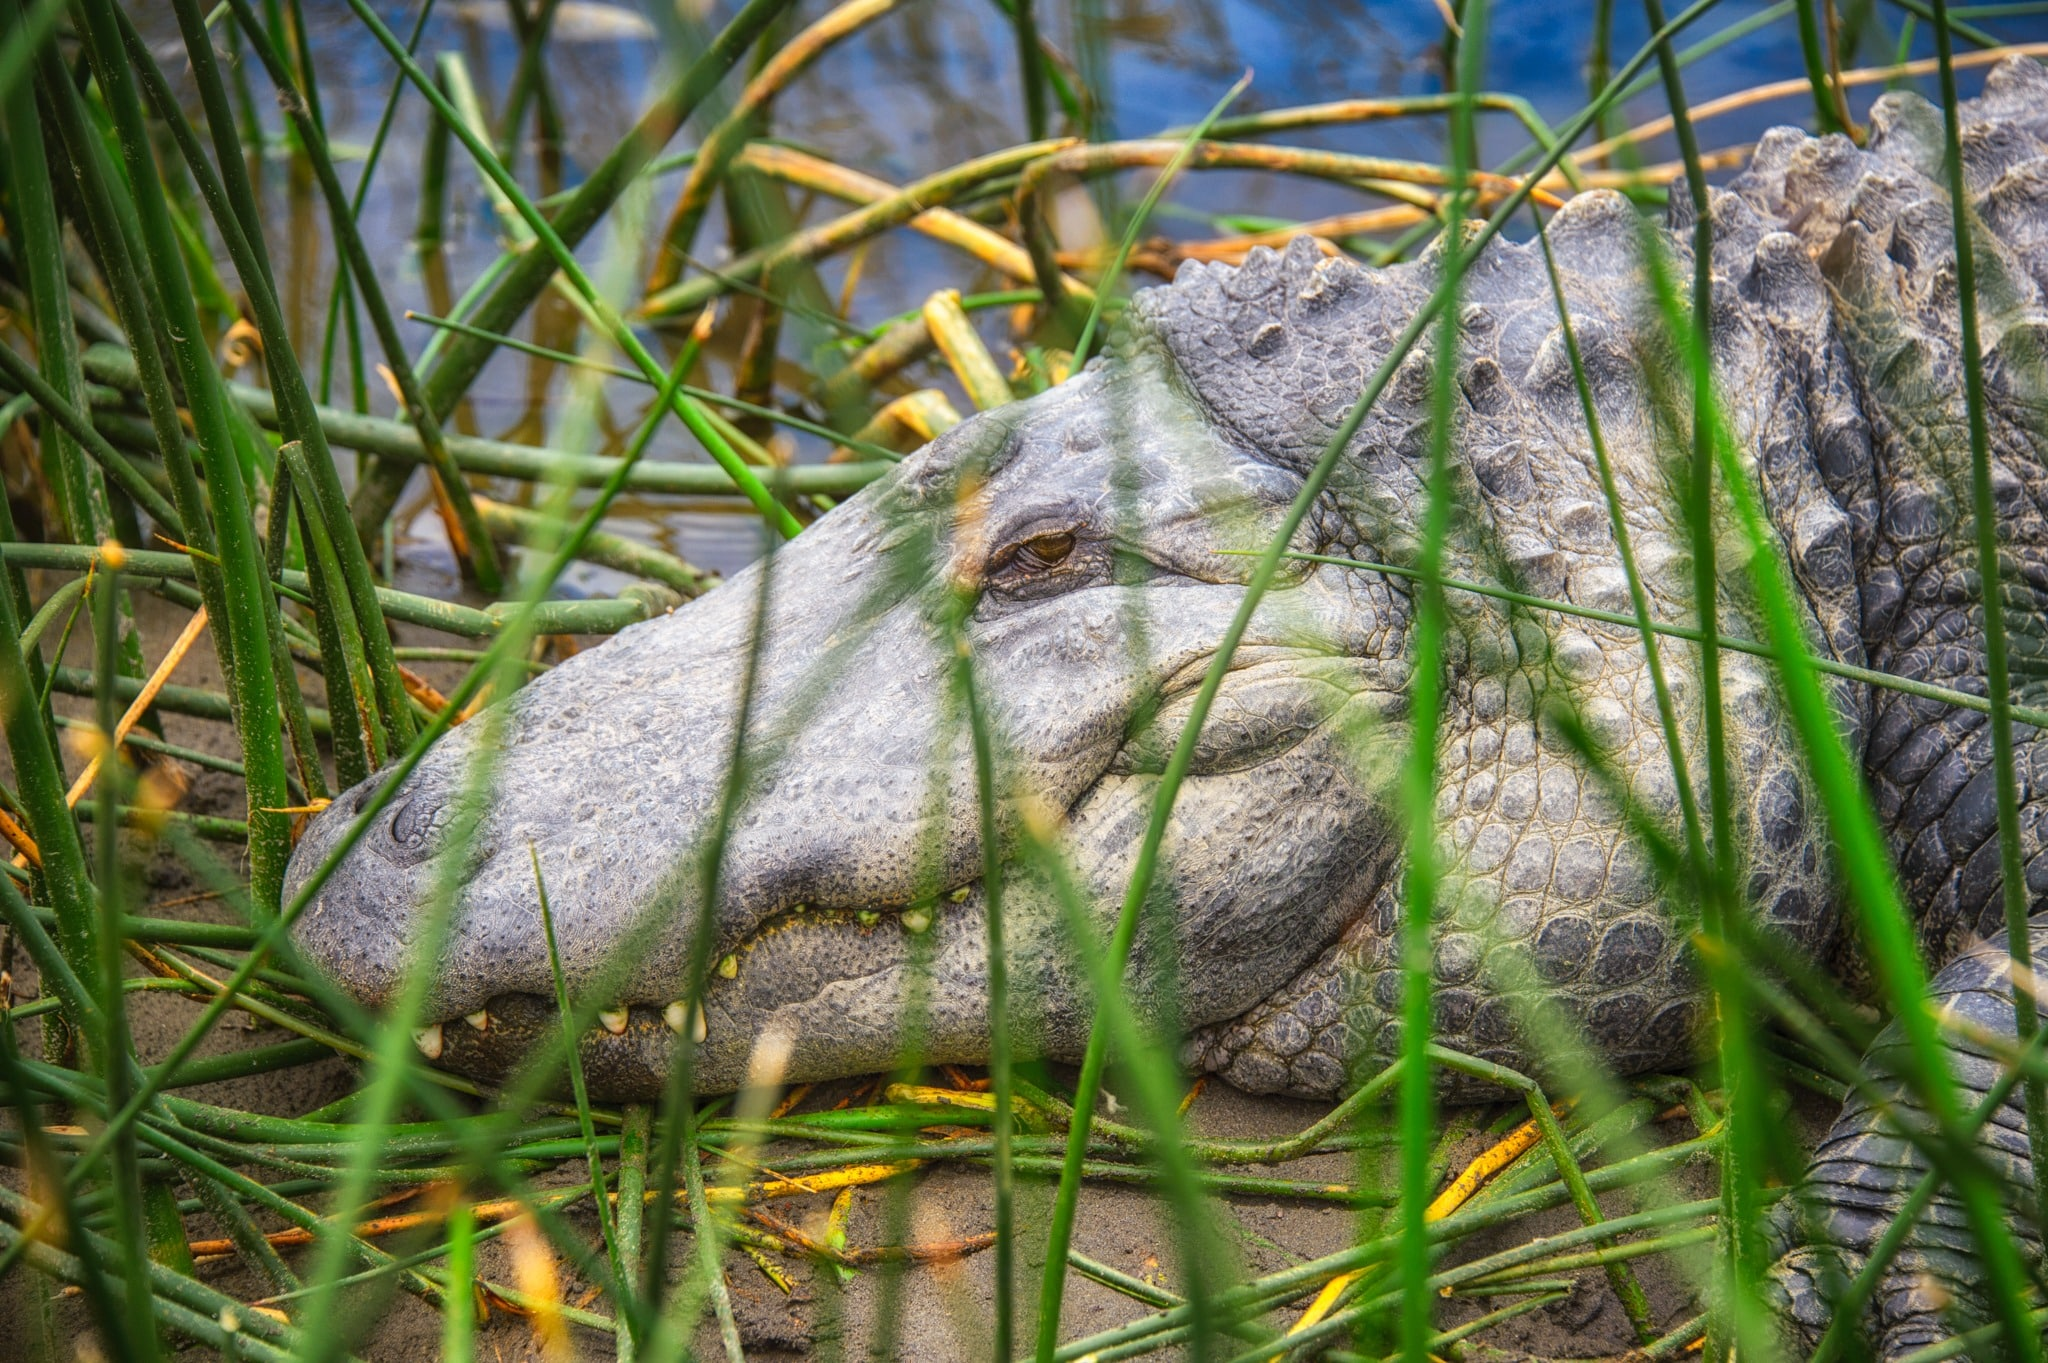 This aged alligator is resting in her own private pond enclosure. She is one of the oldest alligators at the Colorado Gators Reptile Park near Hooper, Colorado.